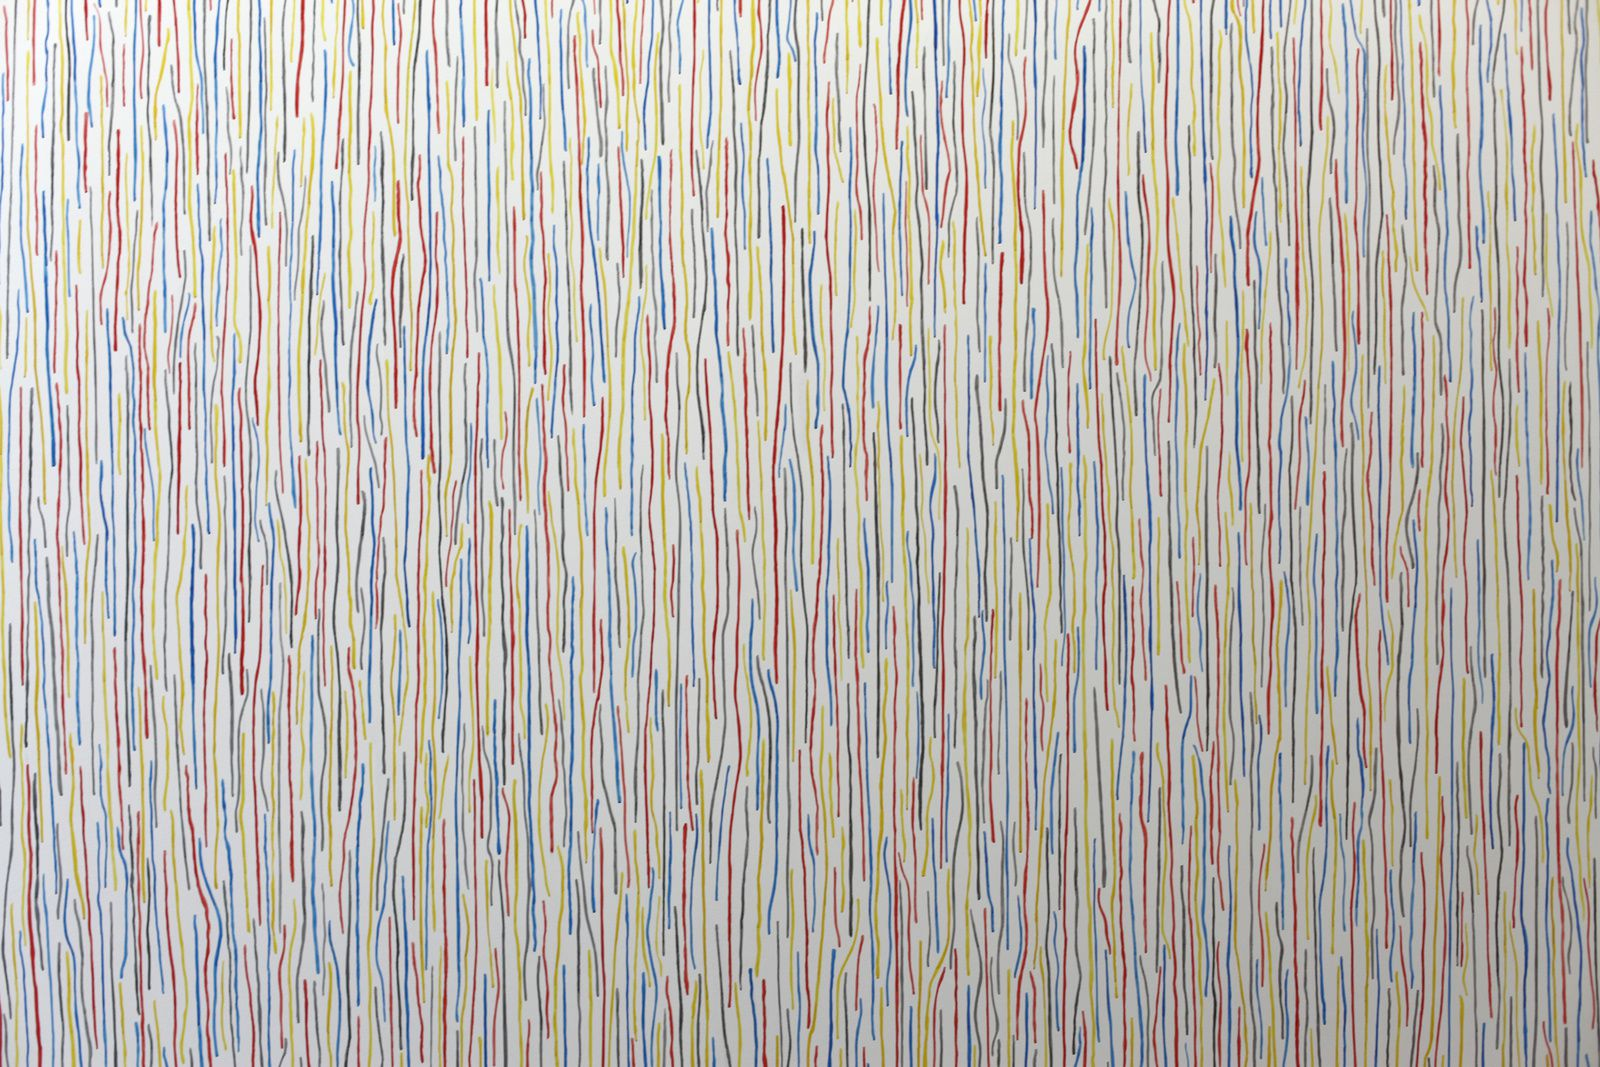 """Wall Drawing #768"", 1994 de Sol LeWitt - Courtesy Galerie Kamel Mennour © Photo Éric Simon"